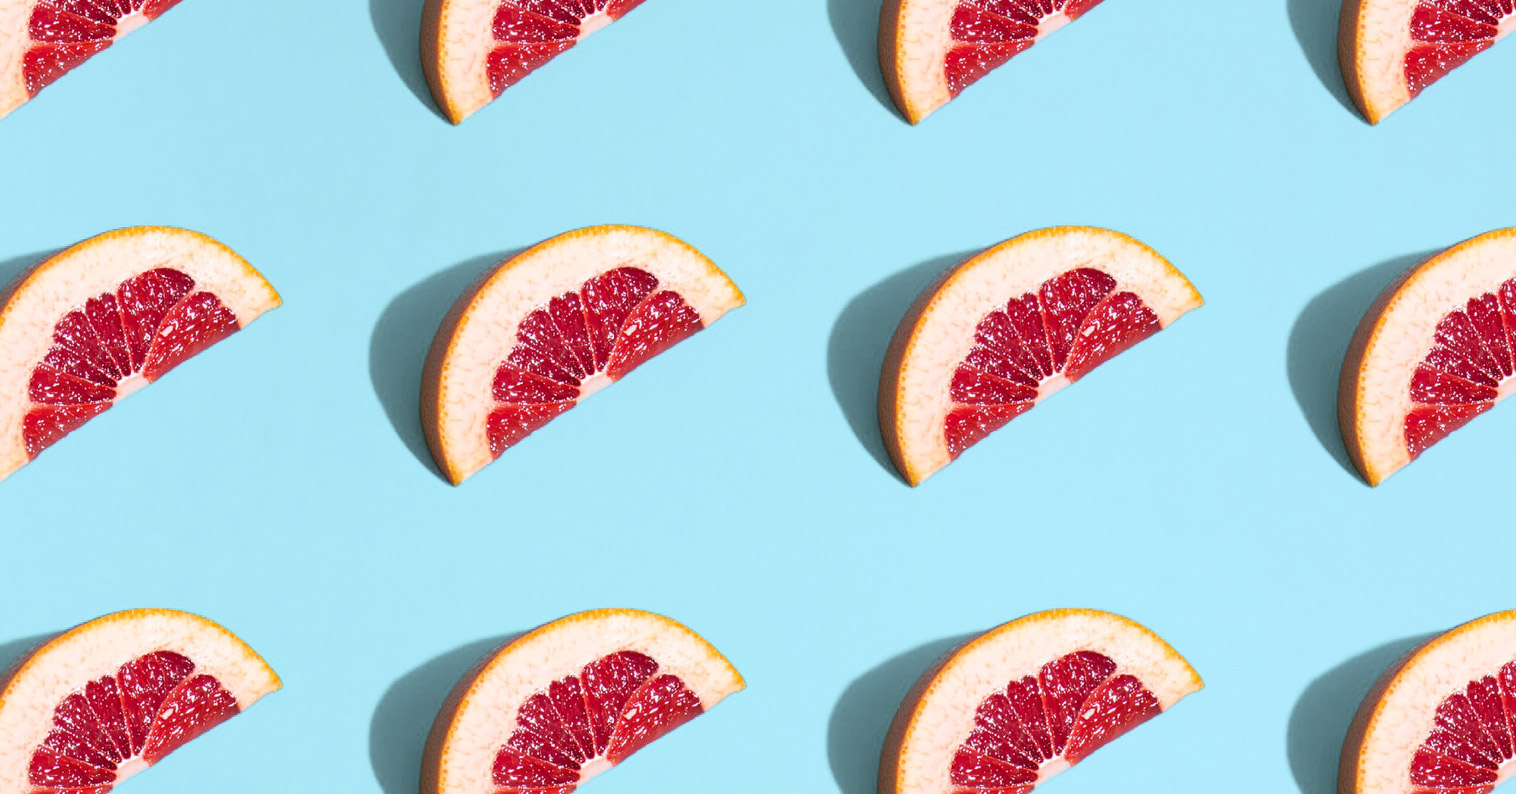 Many different blood oranges to choose from